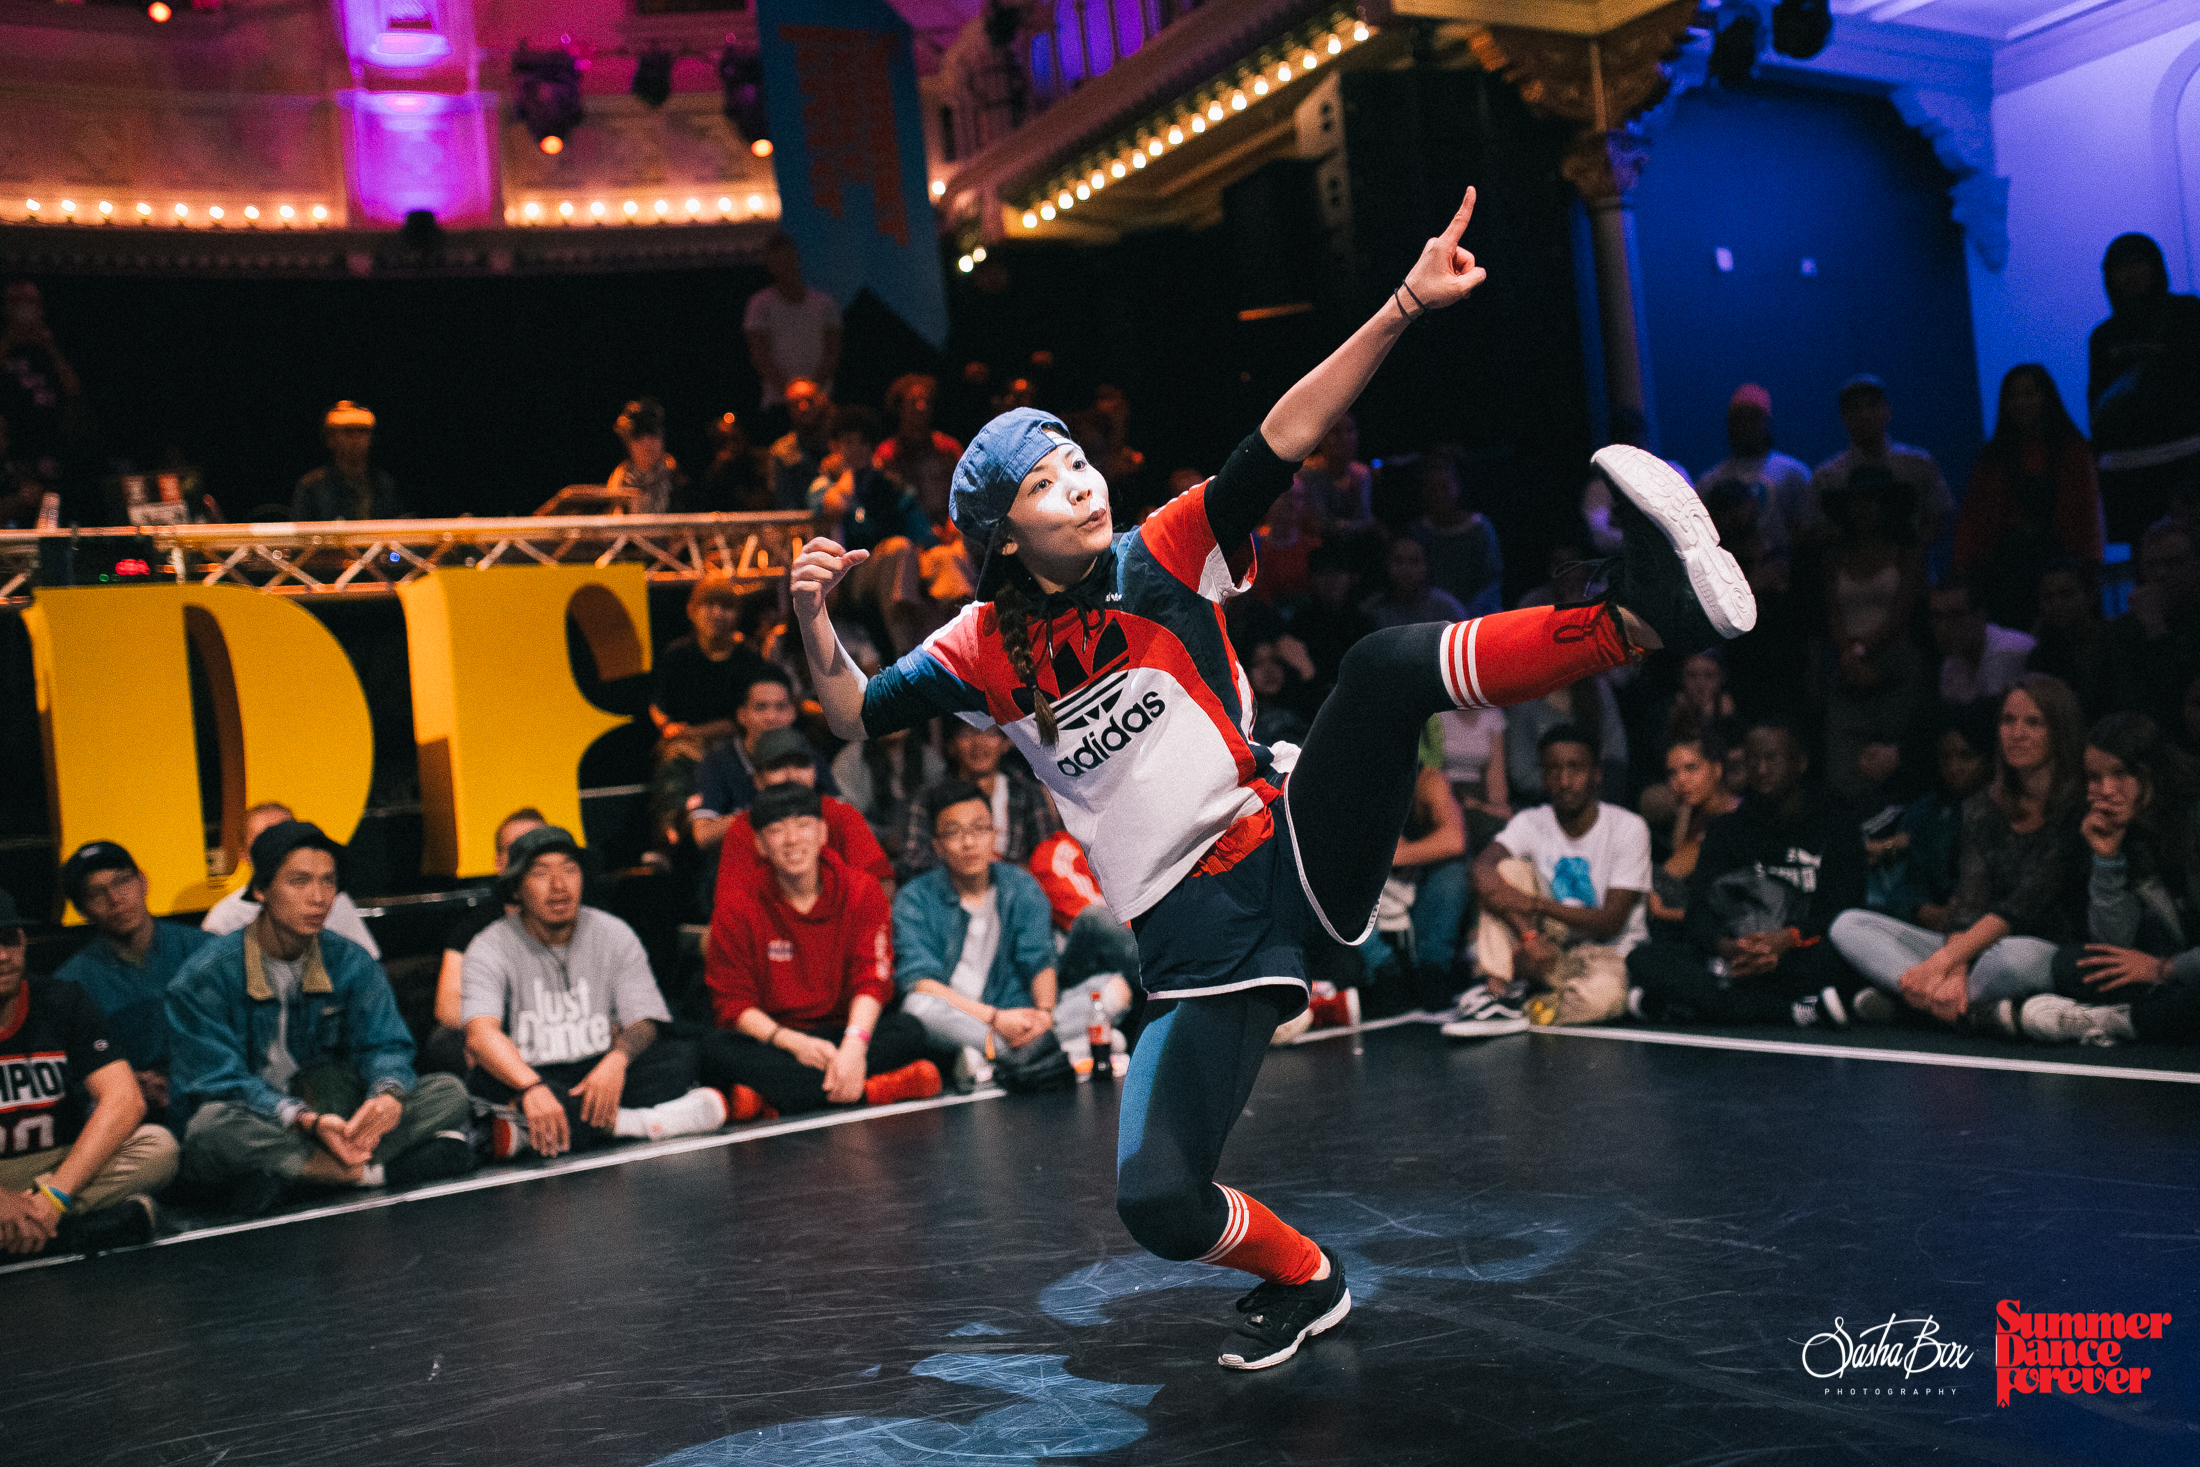 Participants Locking & Popping battle